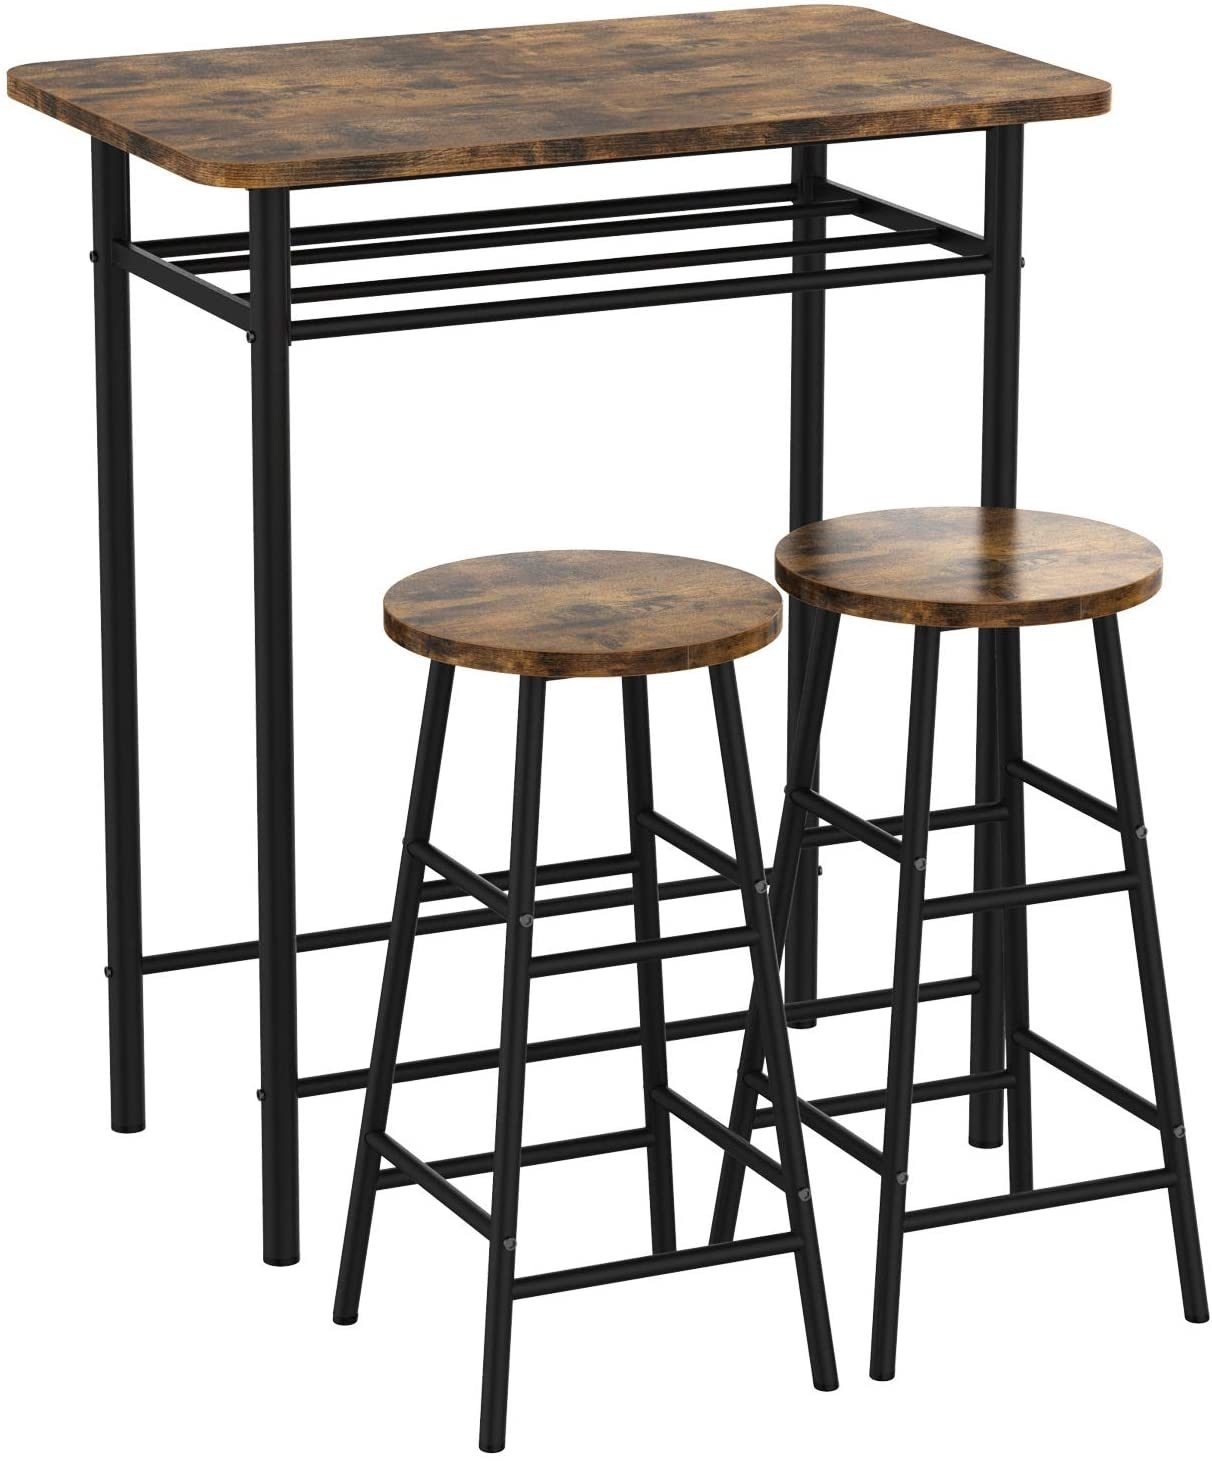 China Wholesaler 3 Pieces Bar Table Set Modern Pub Table And Chairs Dining Set Kitchen Counter Height Dining Table Set With 2 Bar Stools China Bar Table Counter Height Table